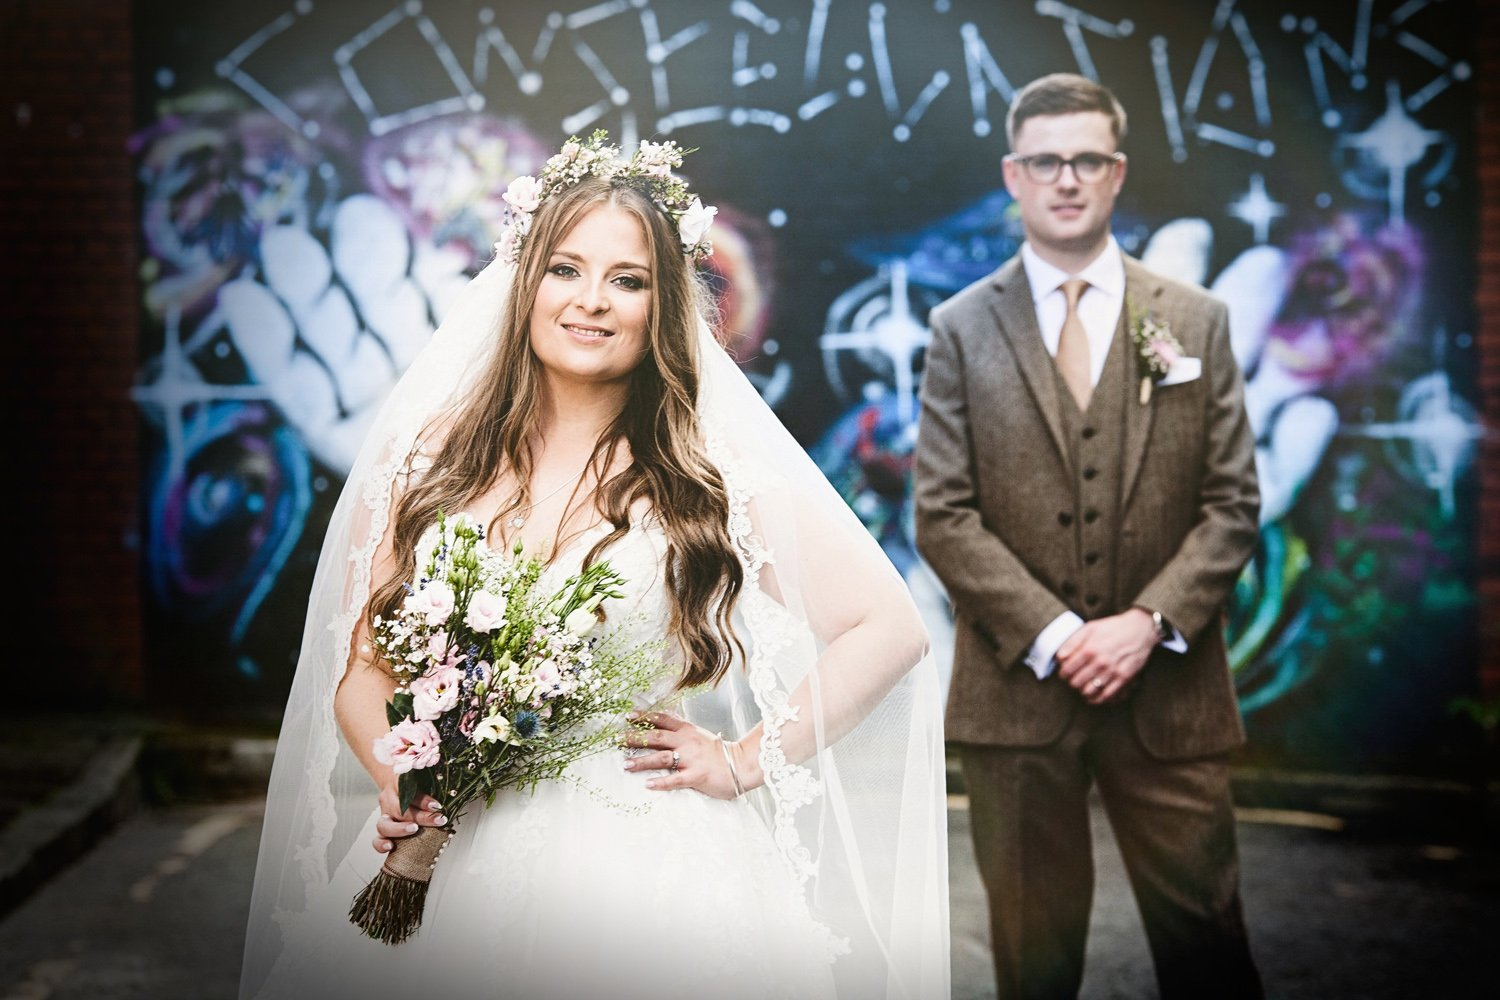 Constellations_Liverpool_wedding_003